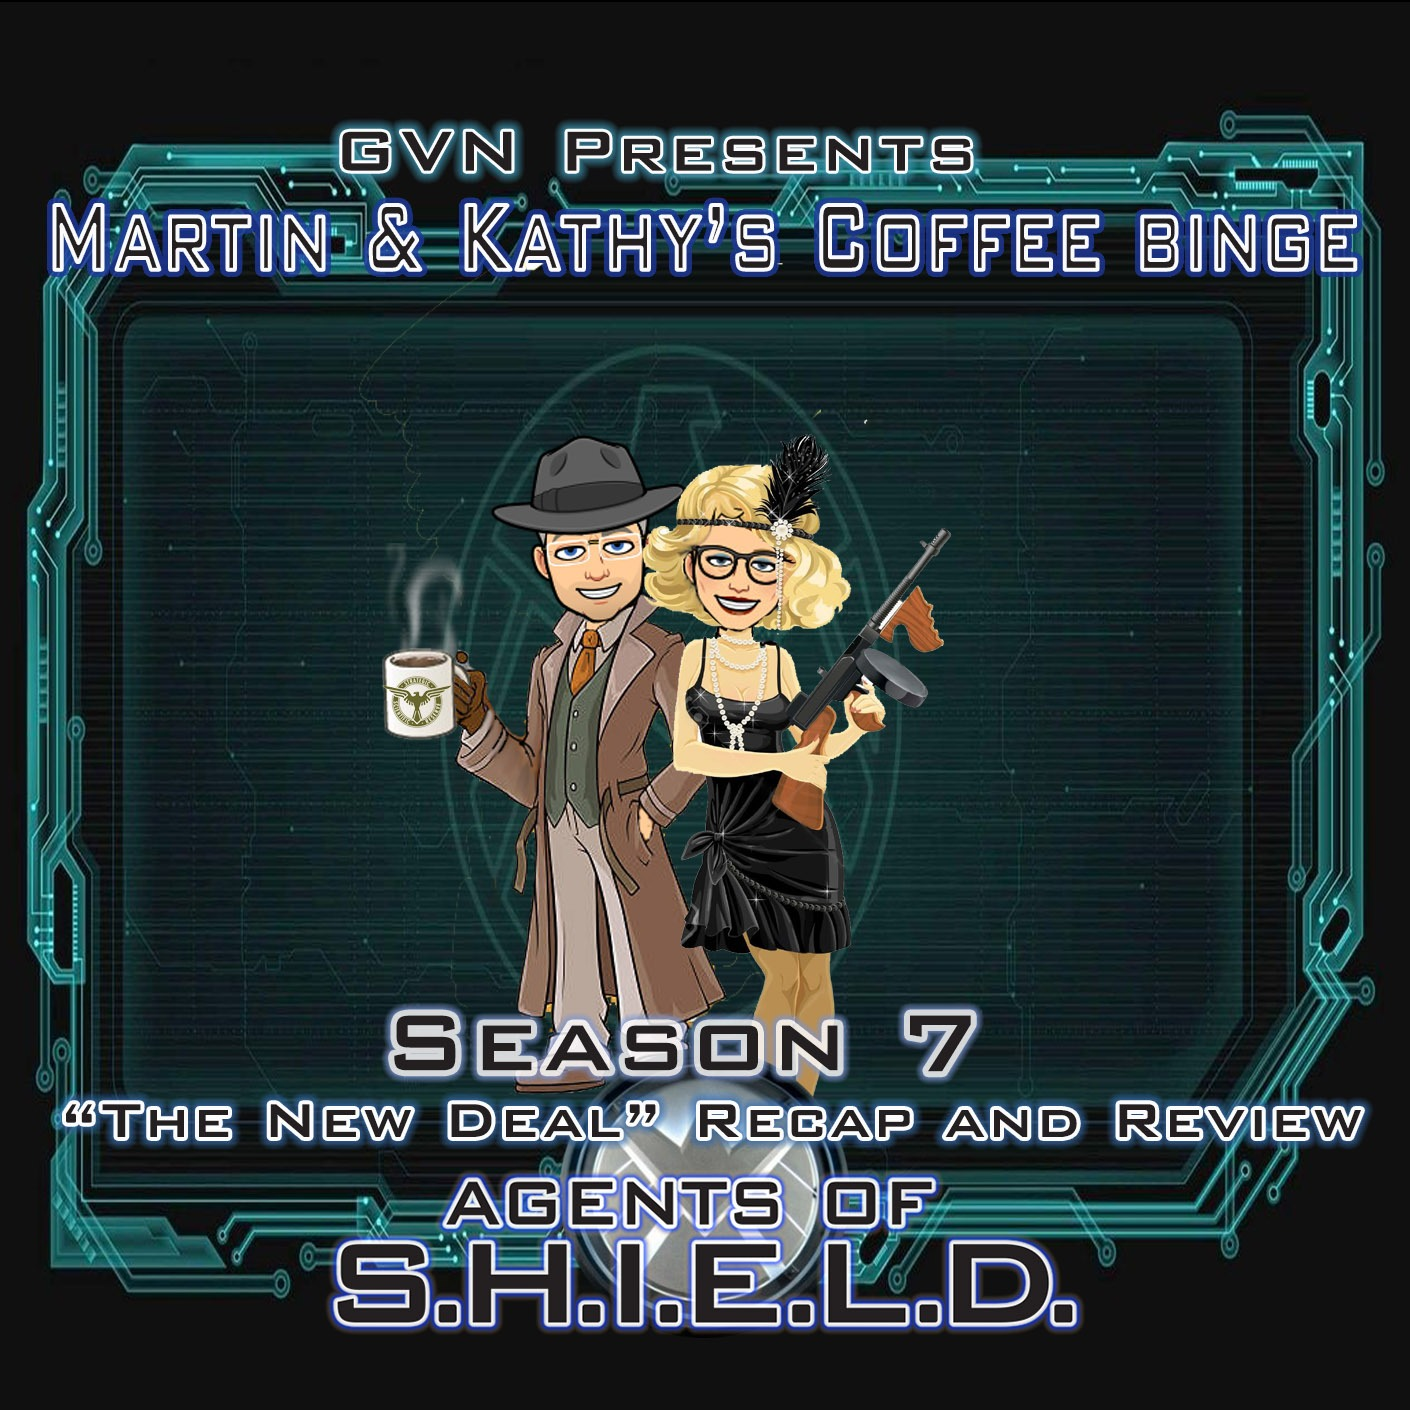 GVN Presents: Martin & Kathy's Coffee Binge - Agents of SHIELD